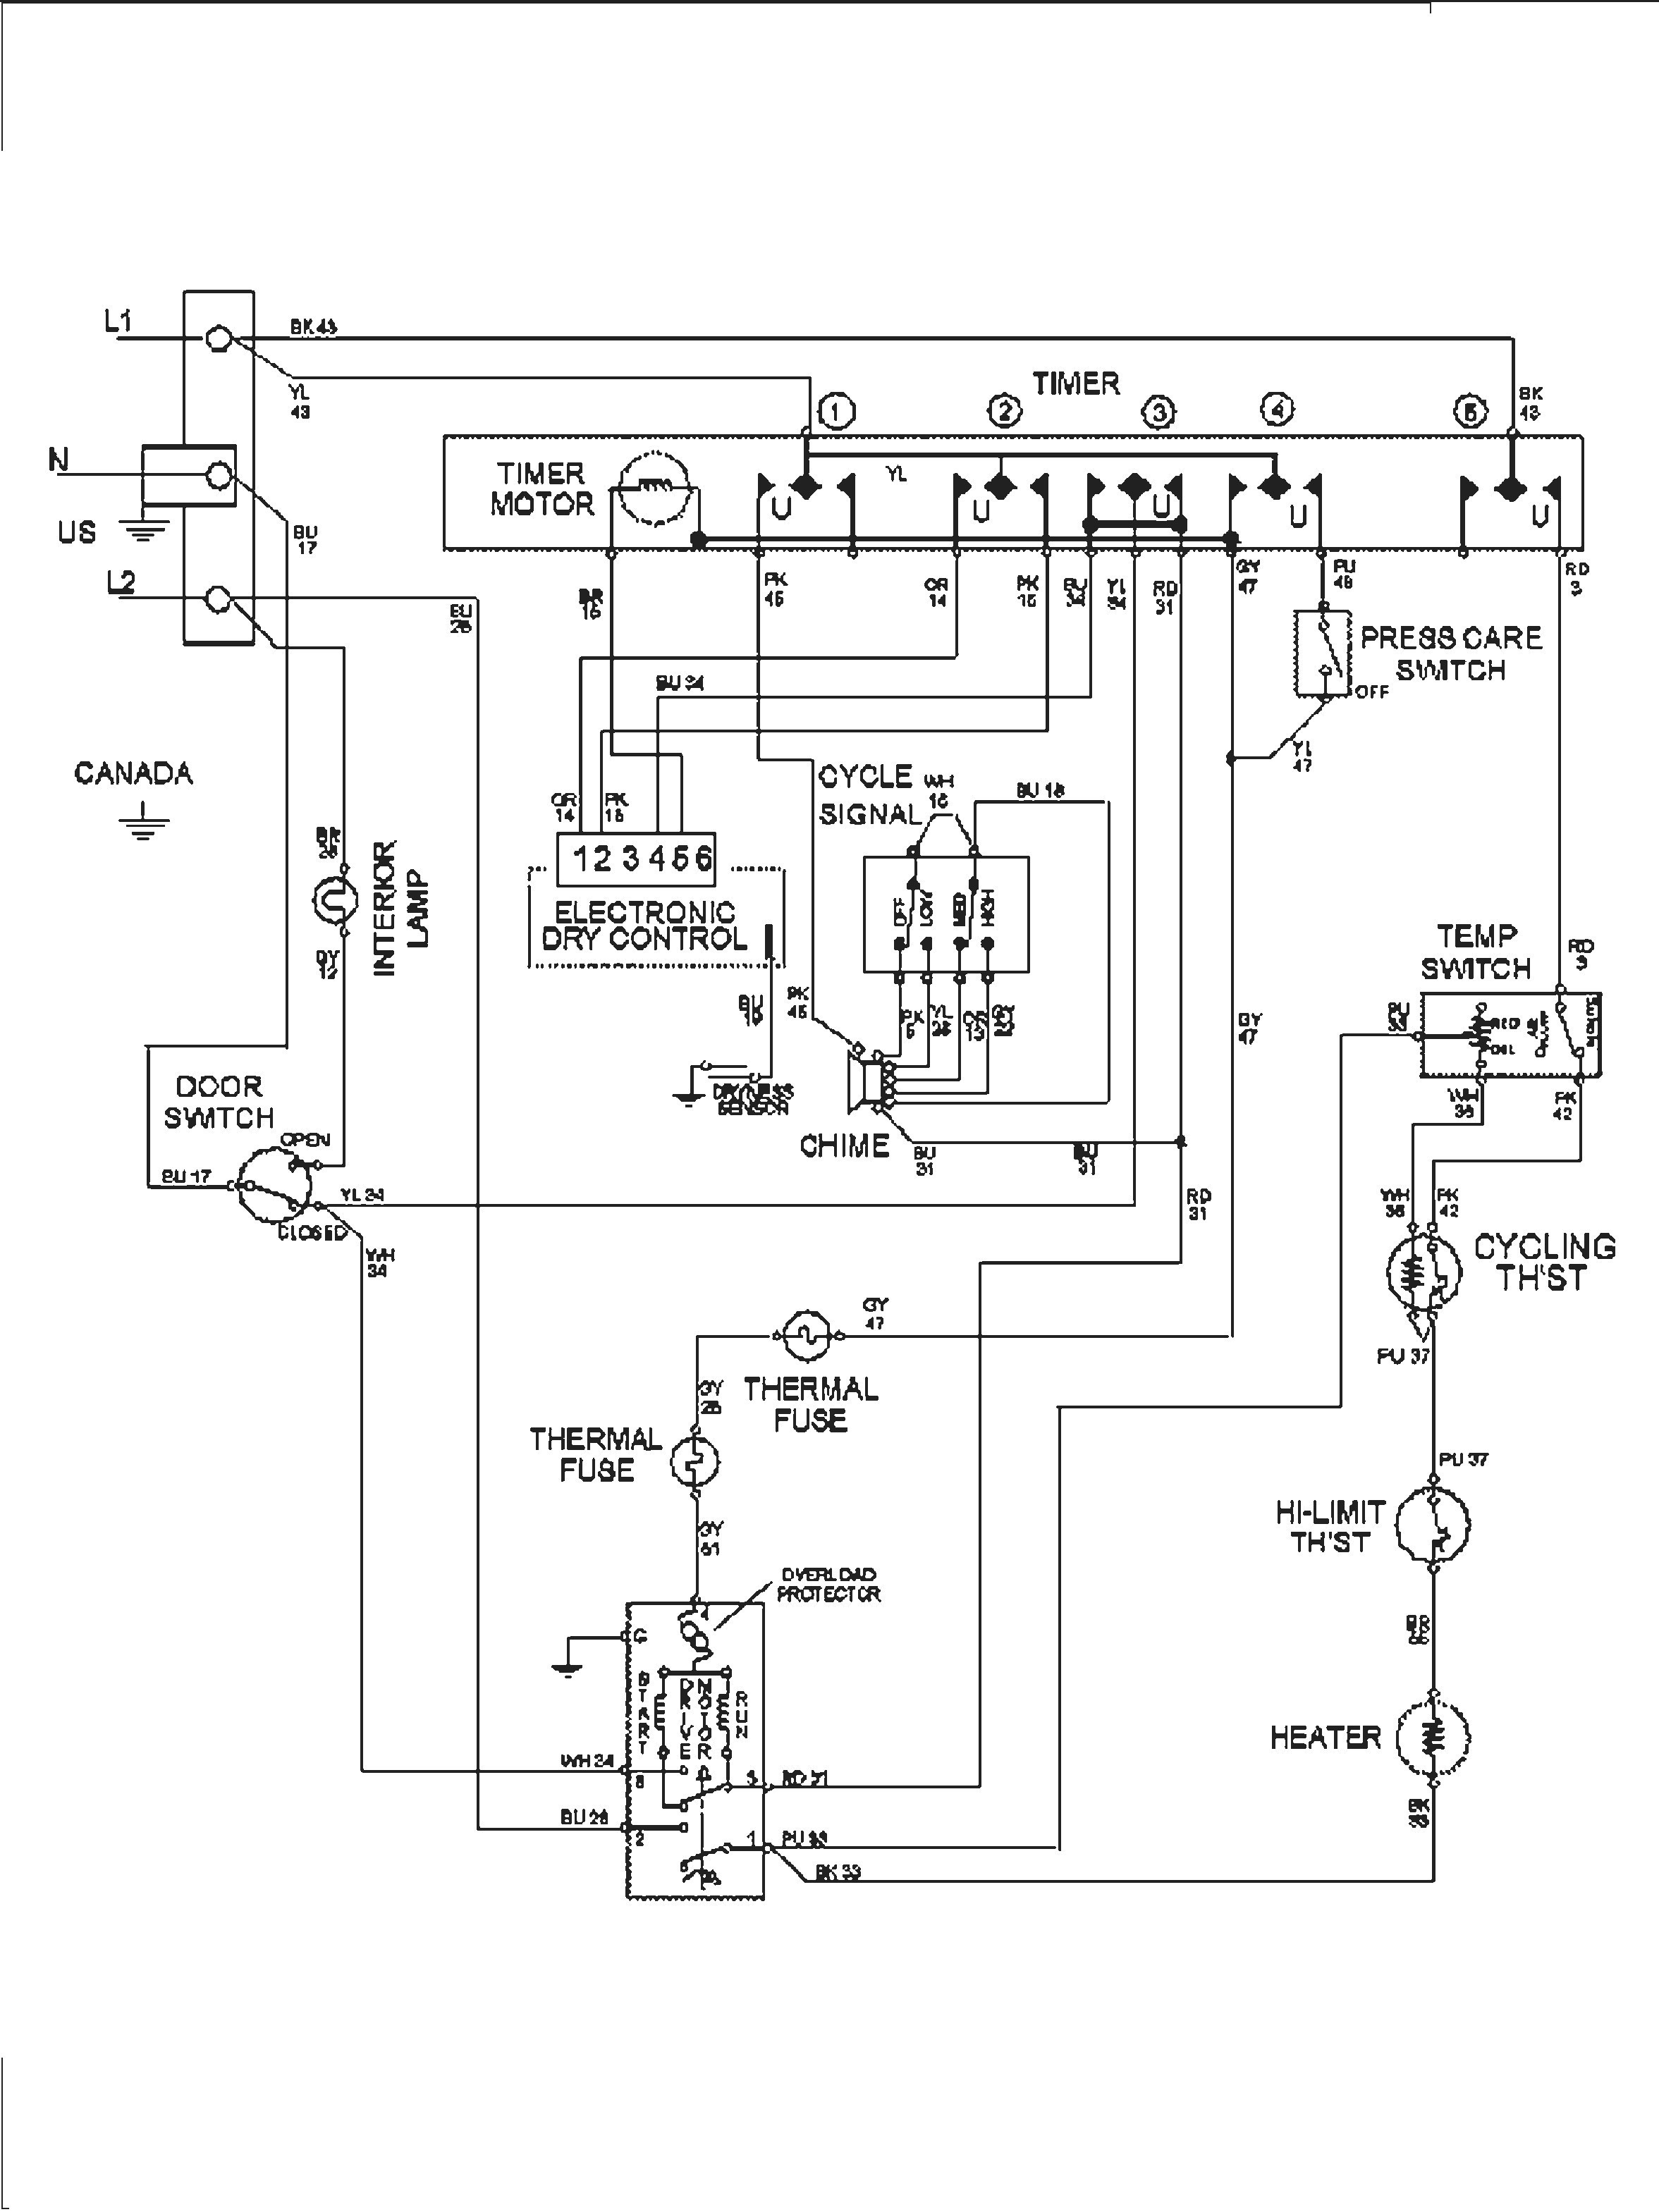 Wiring Diagram For Whirlpool Duet Dryer Heating Element : Maytag duet dryer wiring diagram library